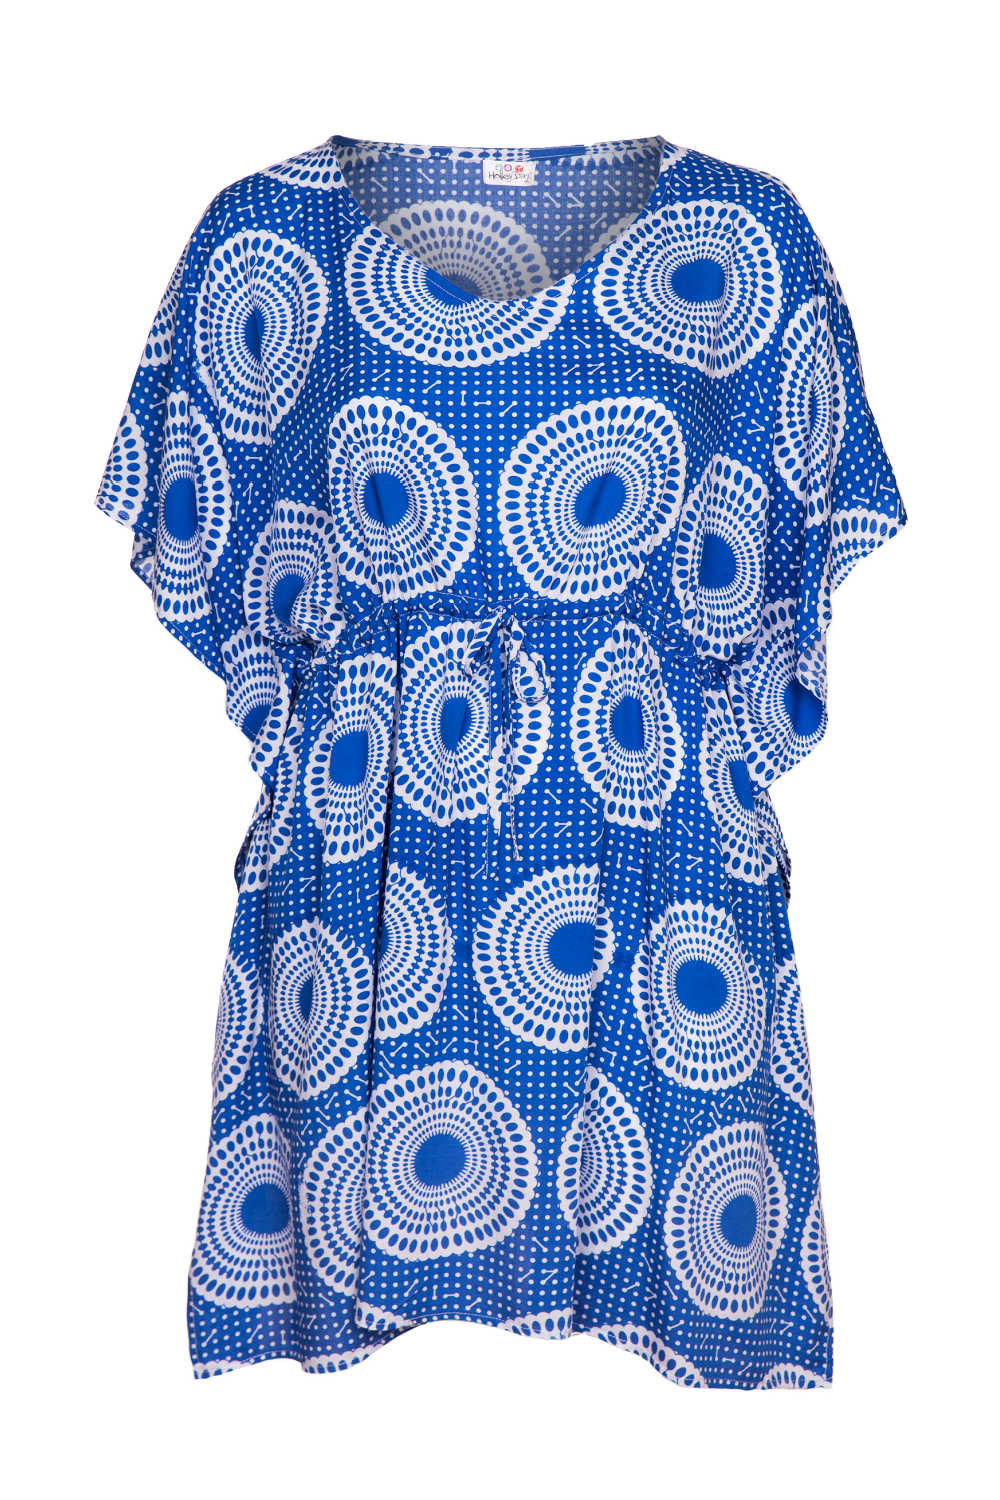 summer-beach-kaftan-dress-blue-white-polka-dot